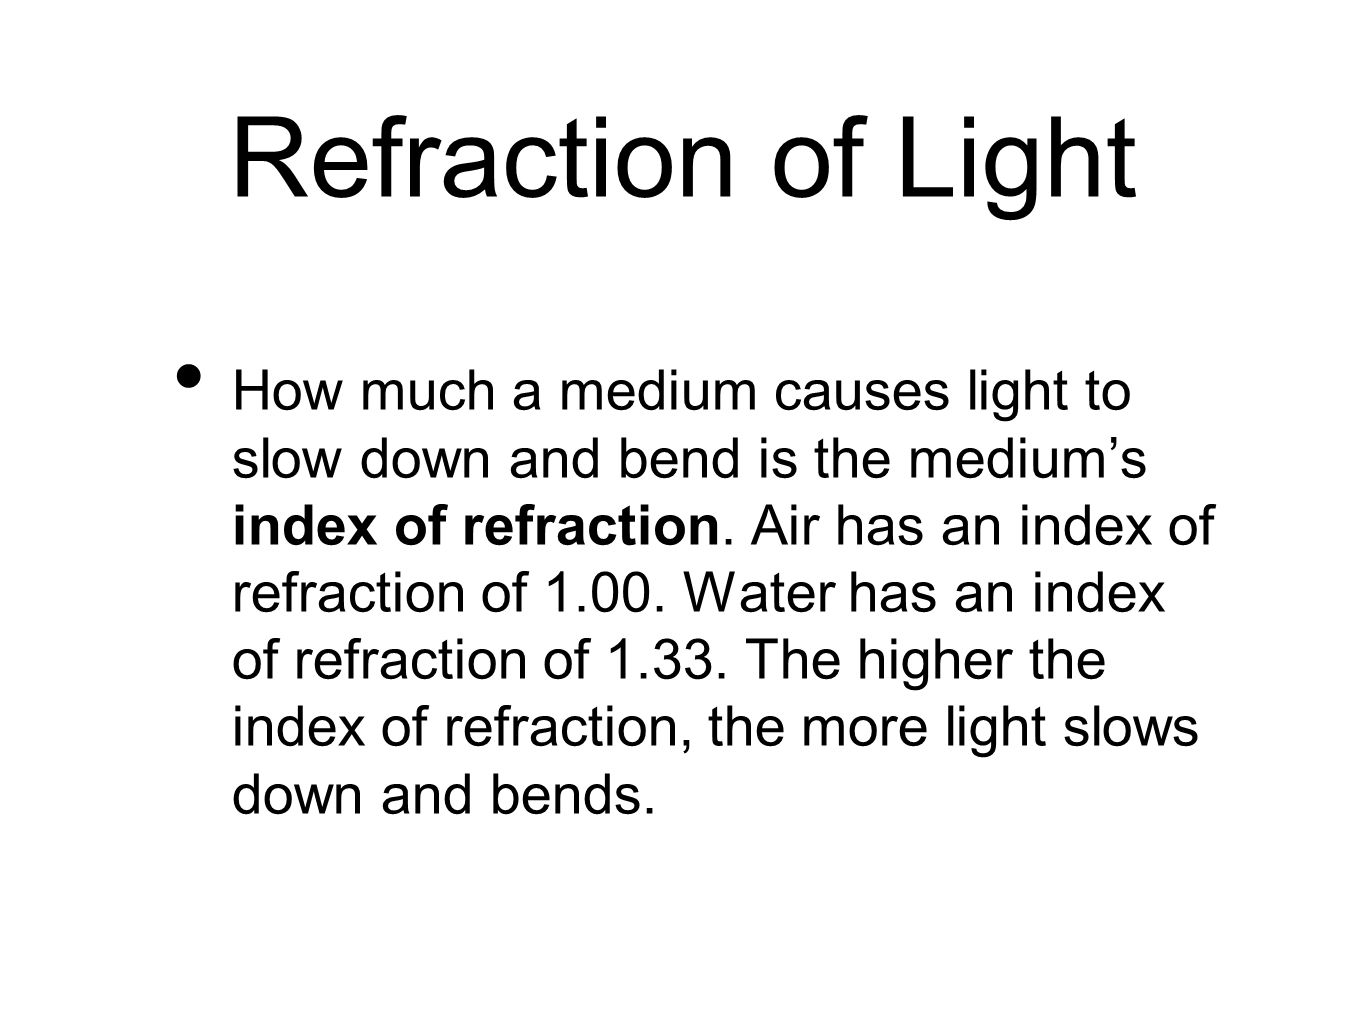 Refraction of Light How much a medium causes light to slow down and bend is the medium's index of refraction. Air has an index of refraction of 1.00.